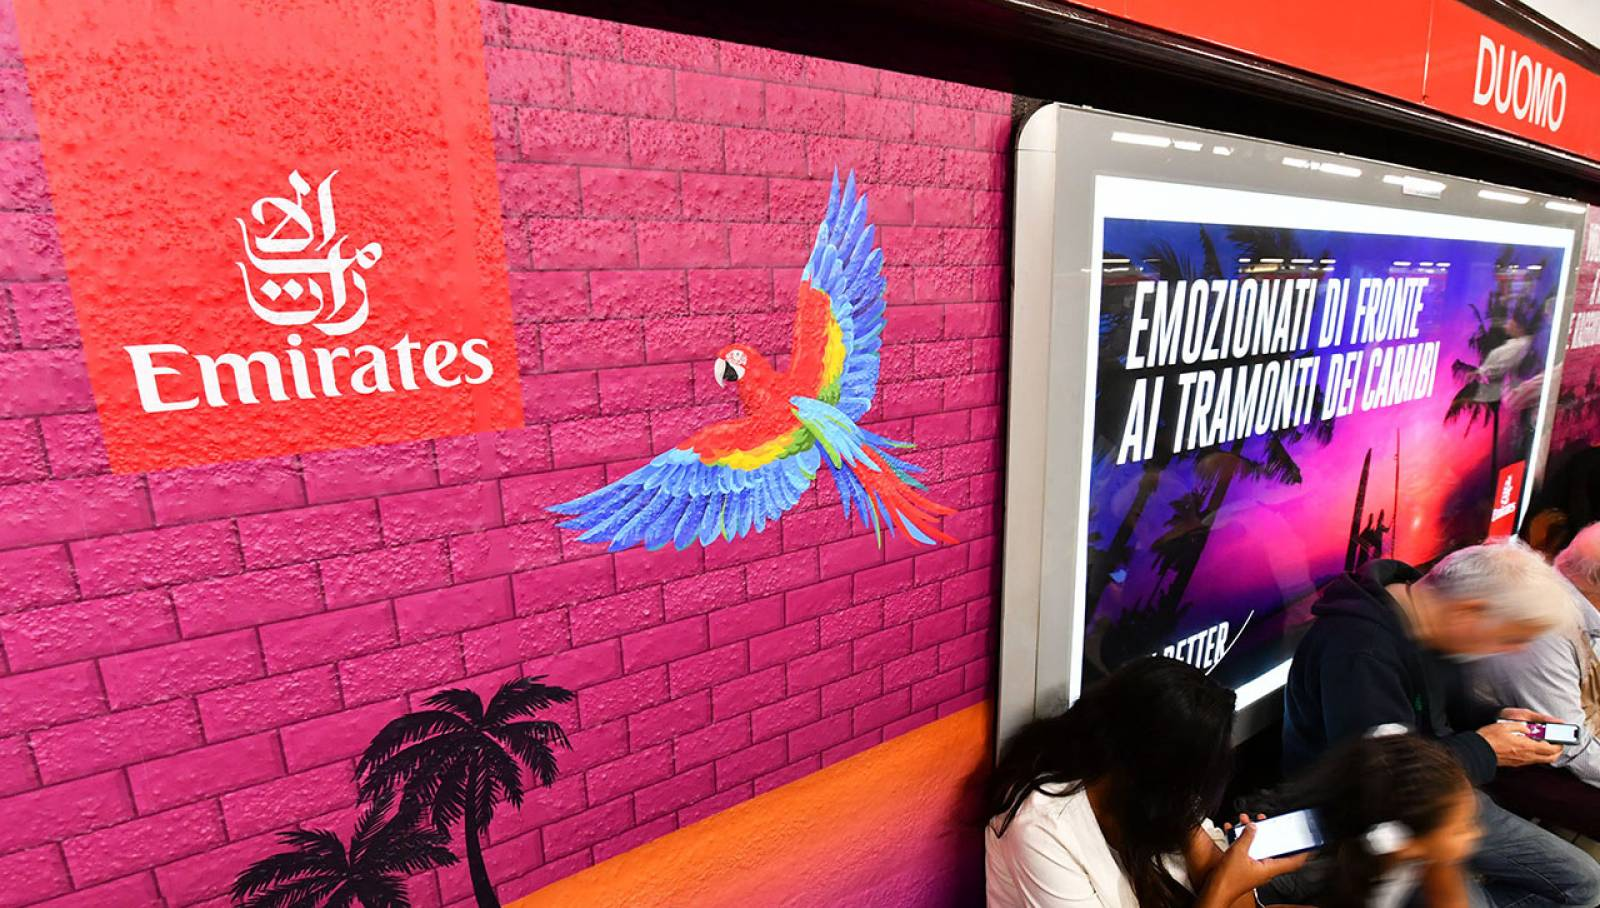 IGPDecaux Station Domination per Emirates a Milano